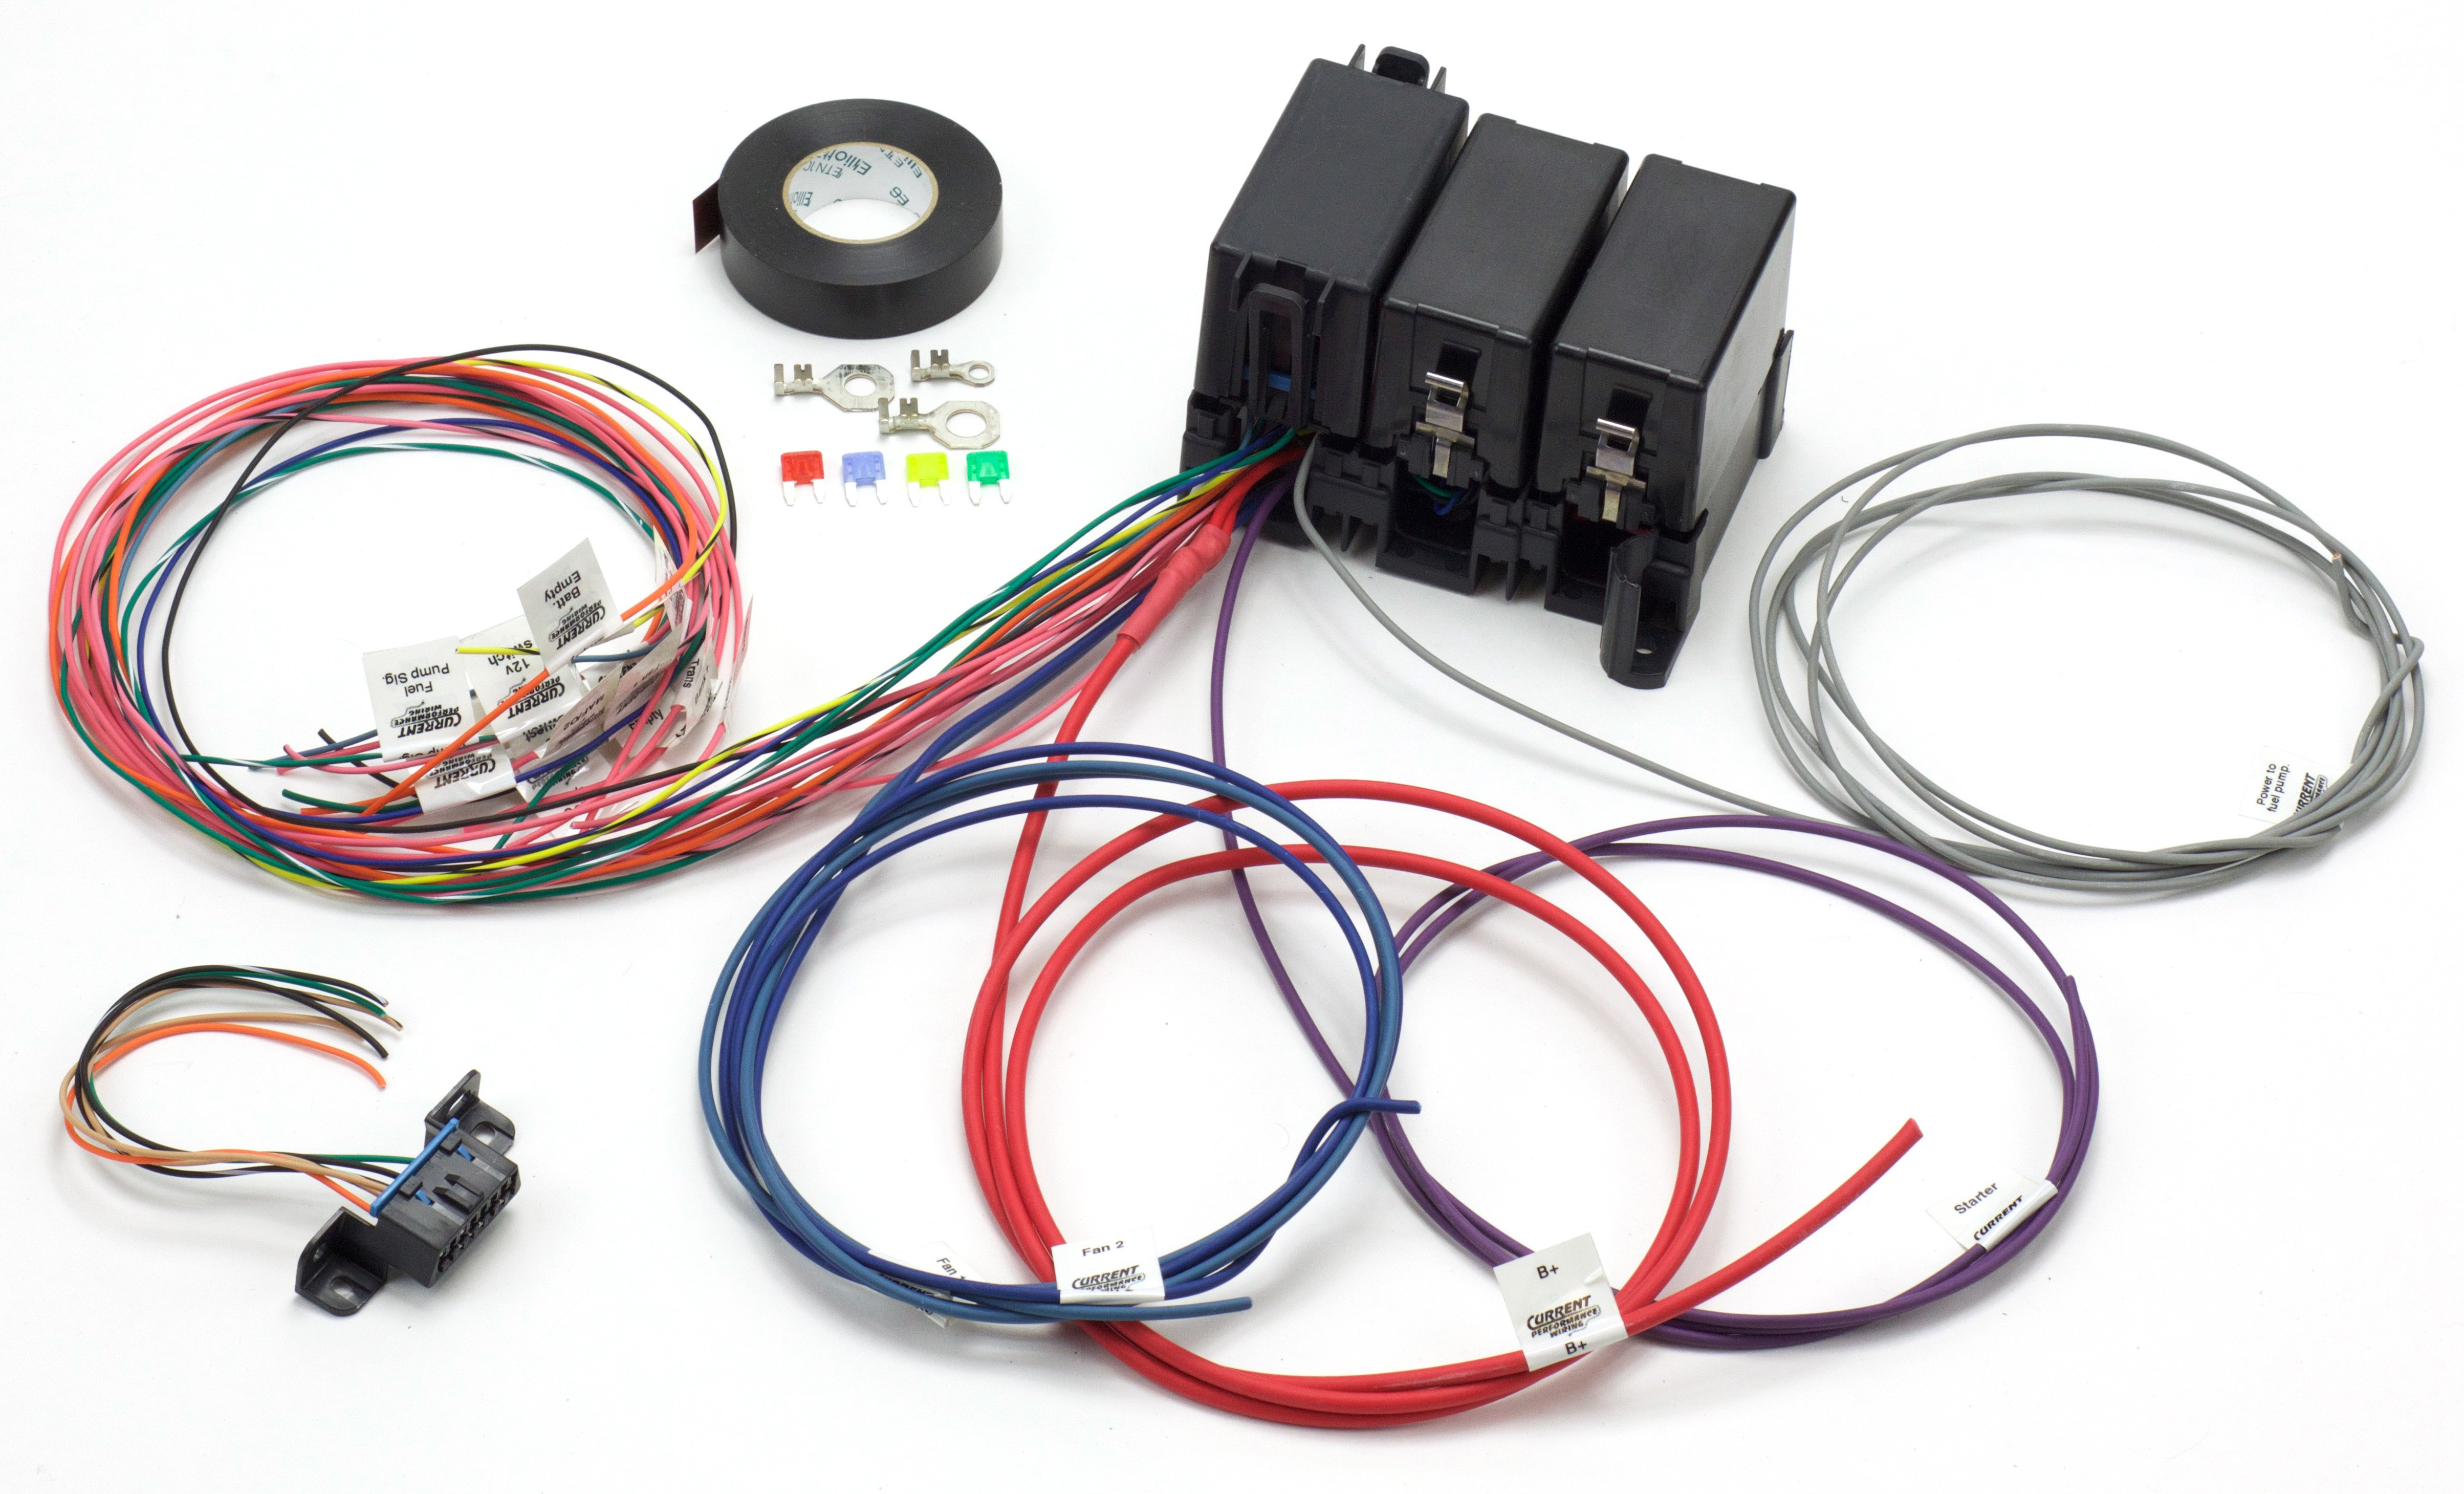 Lt1 Wiring Harness Modification Guide And Troubleshooting Of Conversion 4 Wire Ls1 Get Free Image About Engine Swap 95